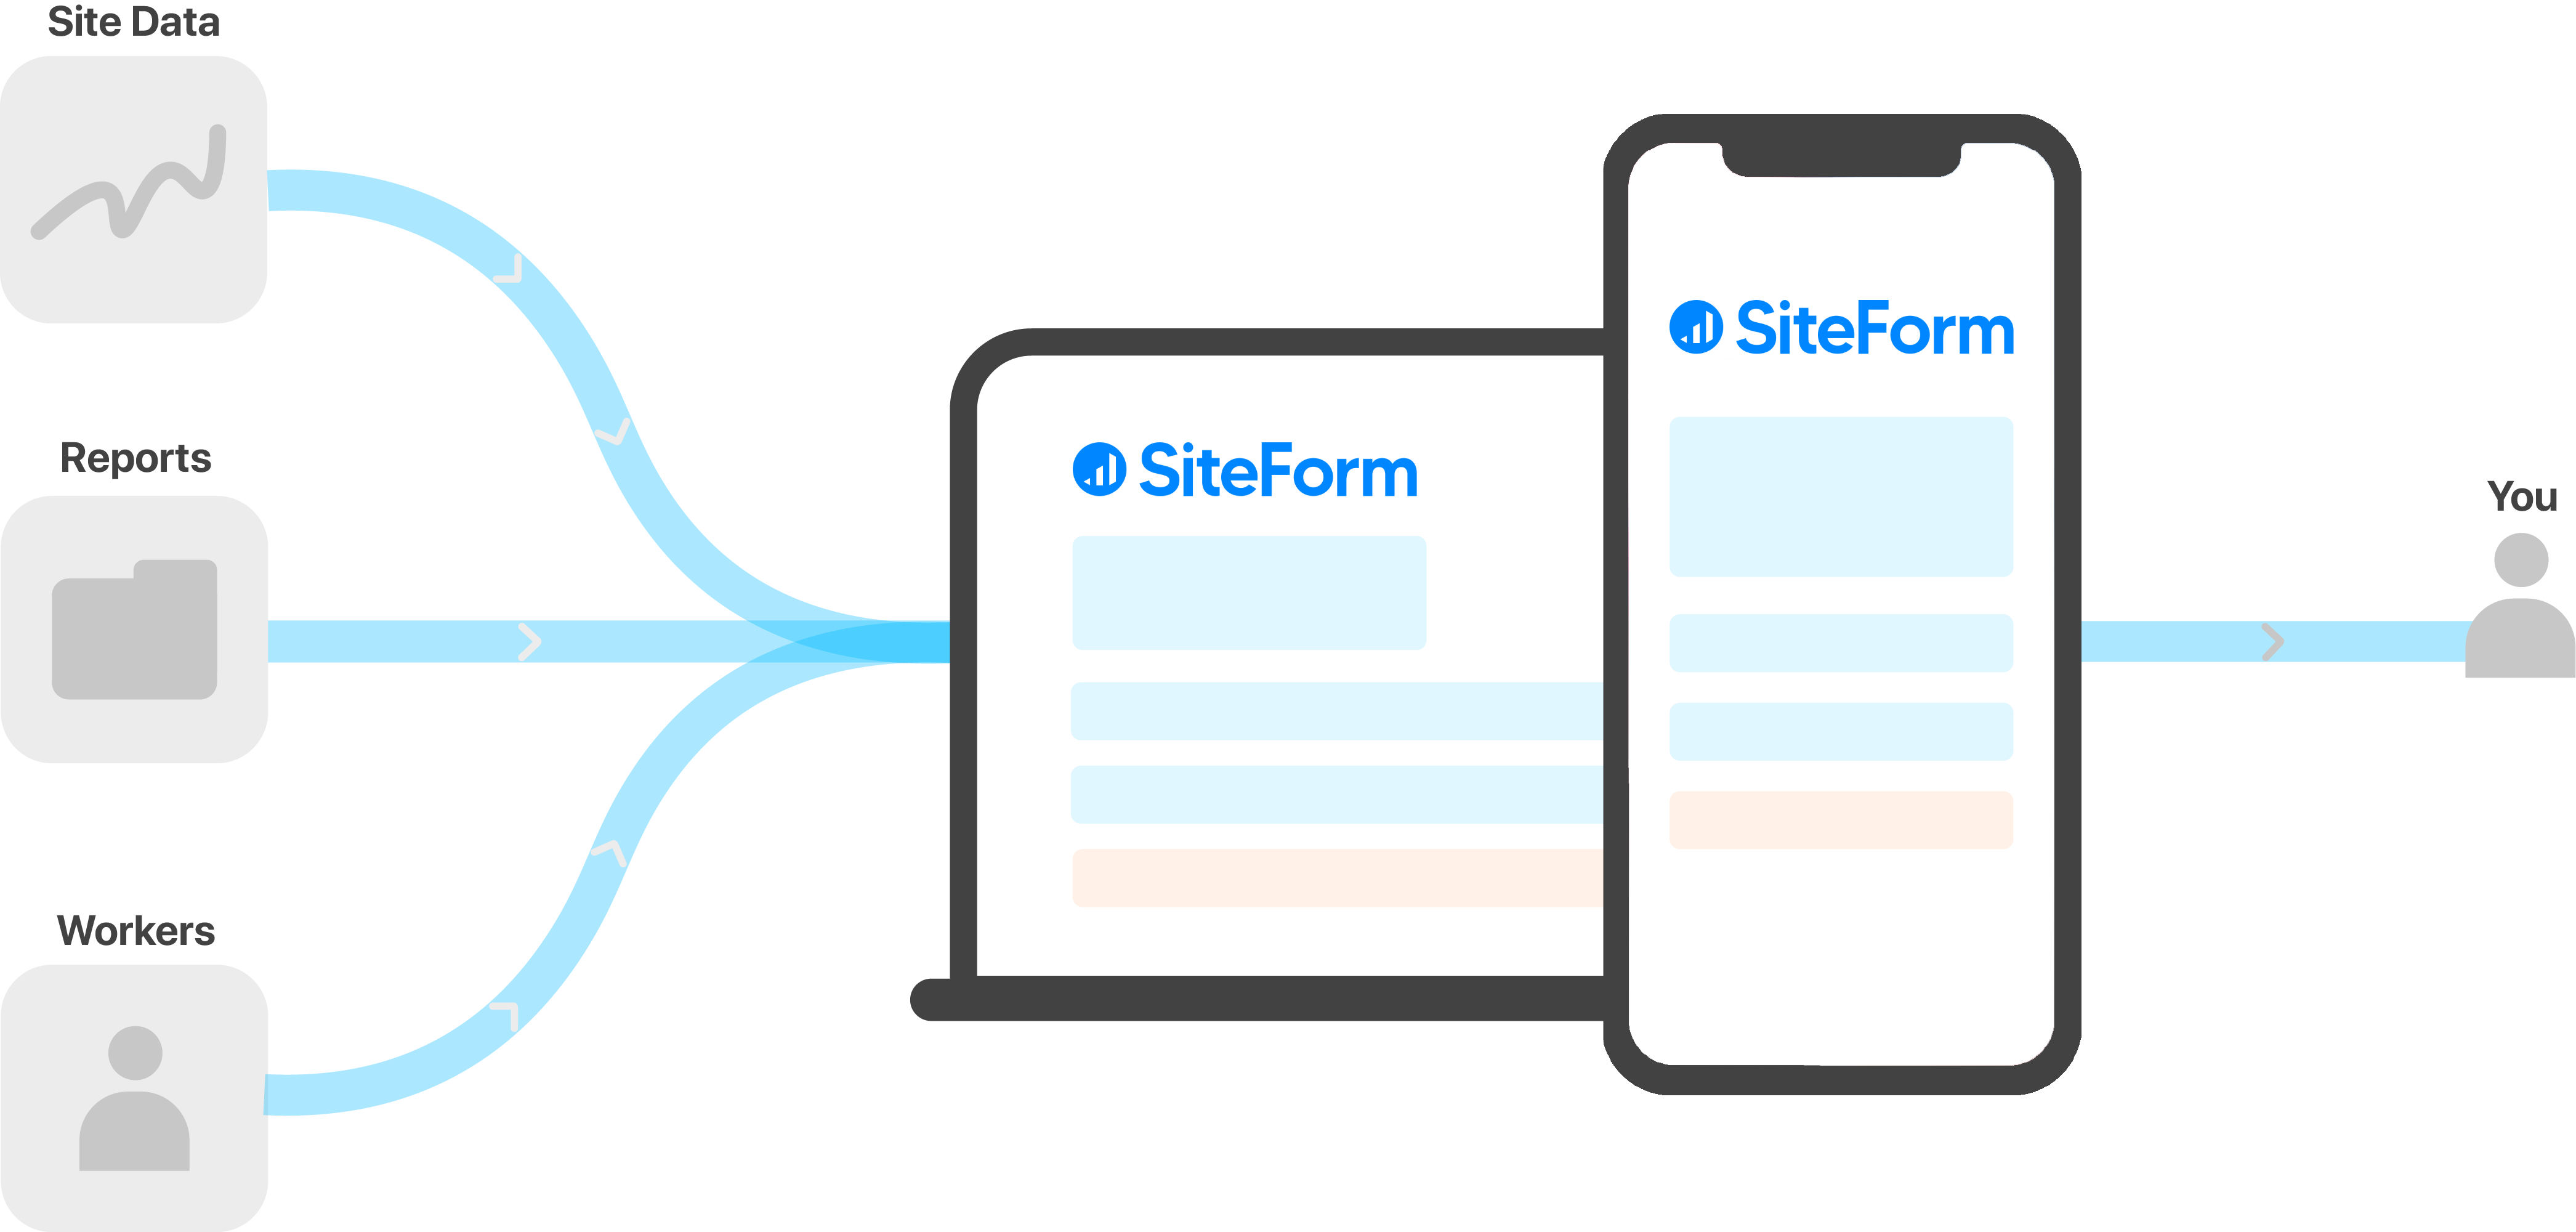 With SiteForm Image